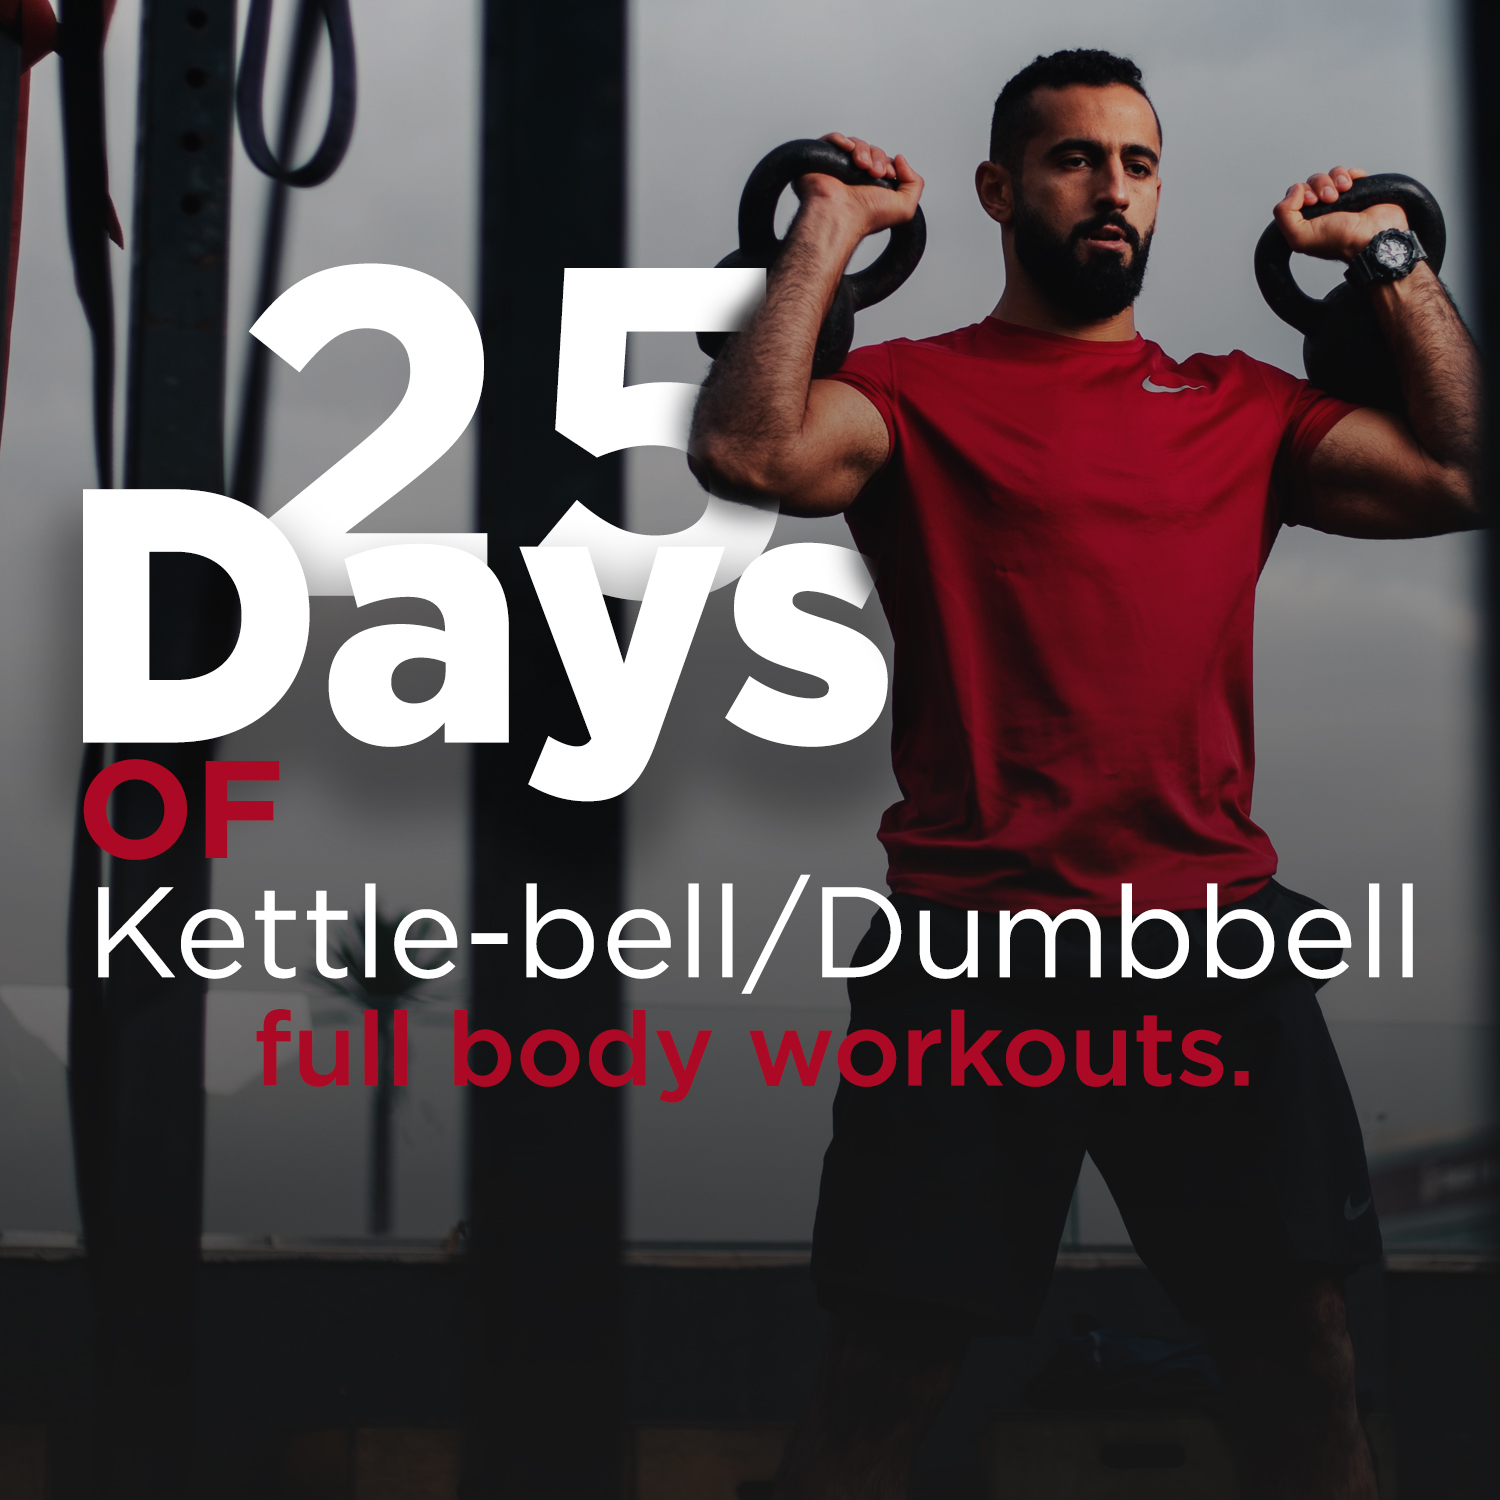 25 days kettlebell/dumbbells workout HIT Egypt